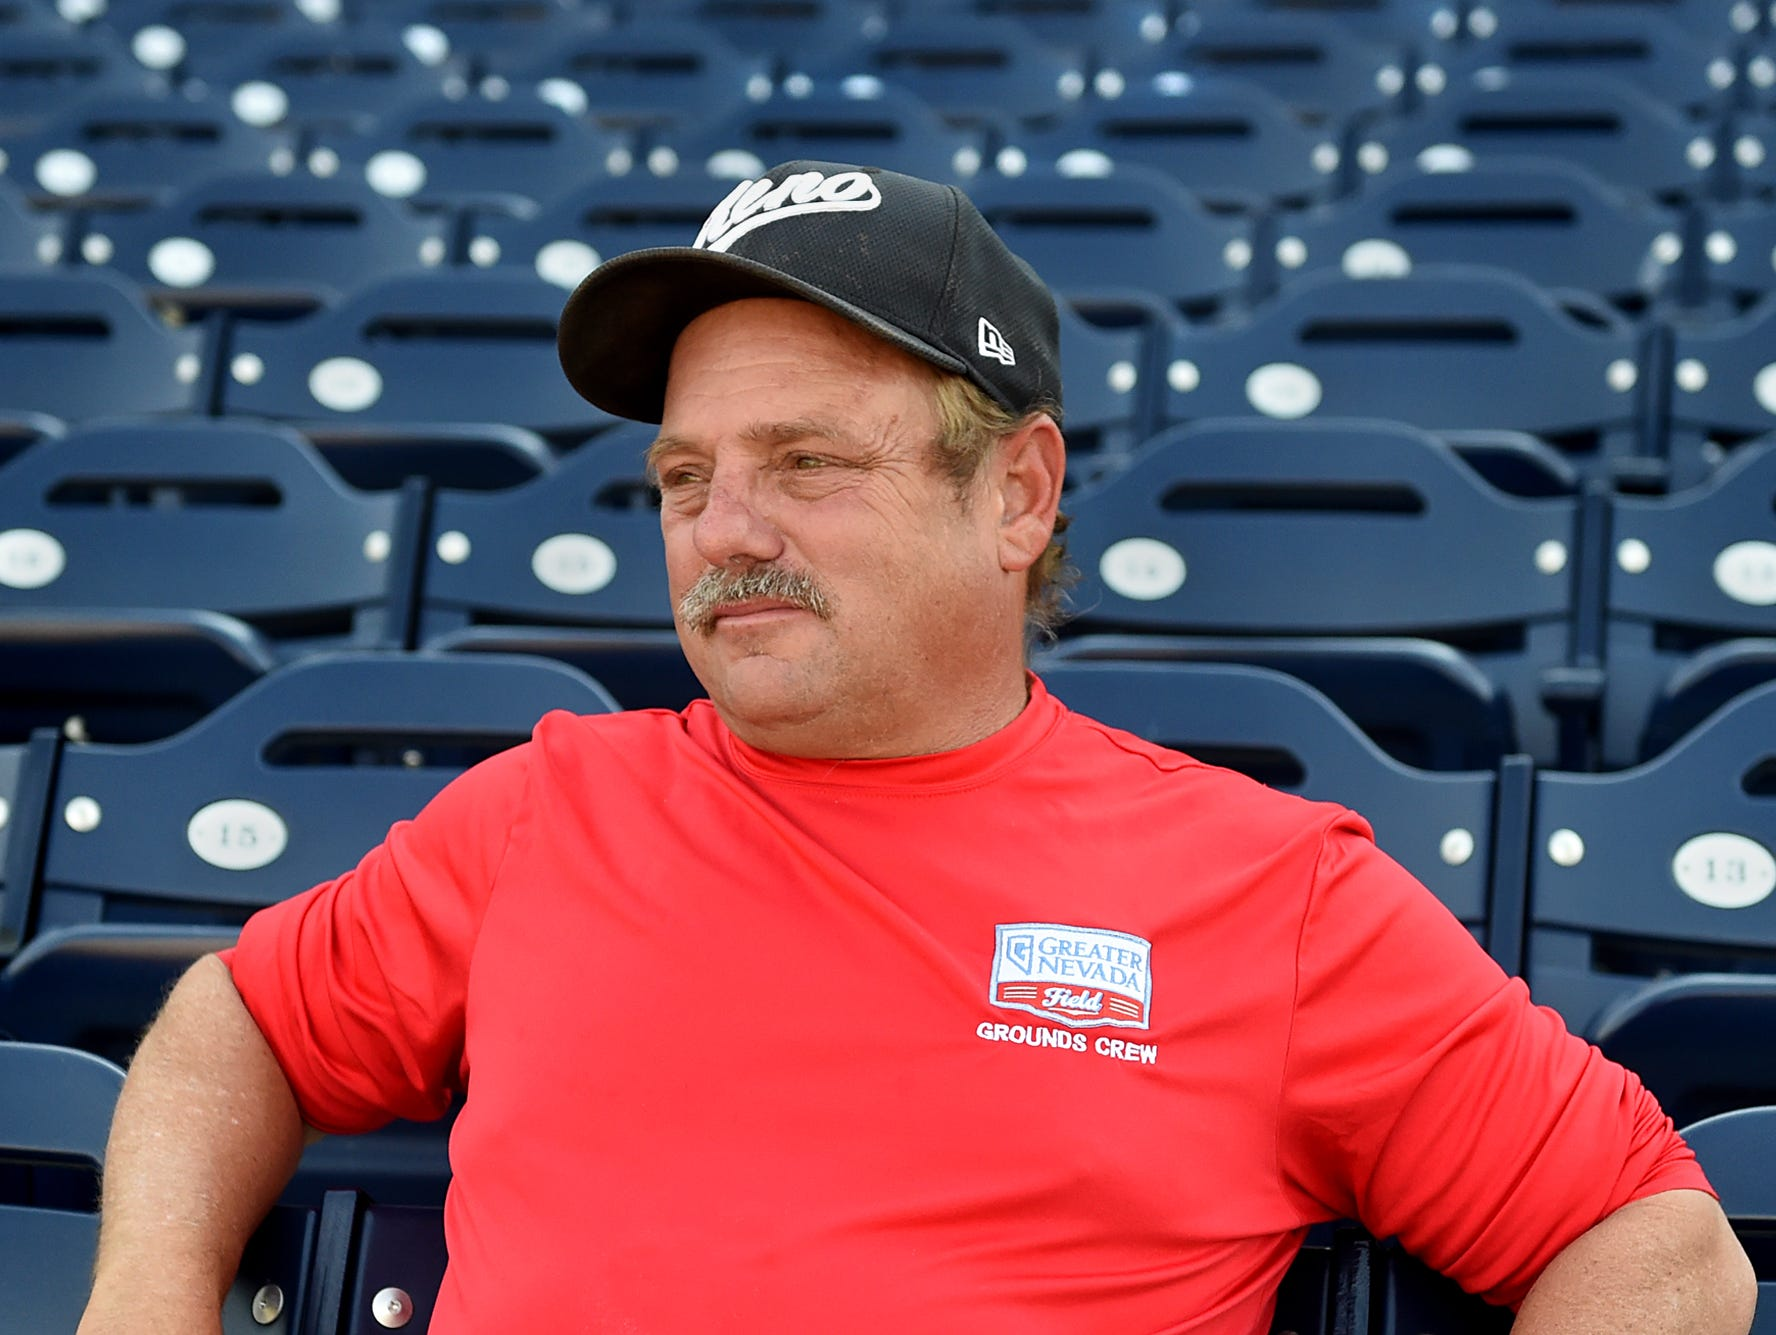 Greater Nevada Field grounds crew member Gray Levy sits in the stadium looking out nto the baseball field on July 26, 2106. Levy has written a book on football.